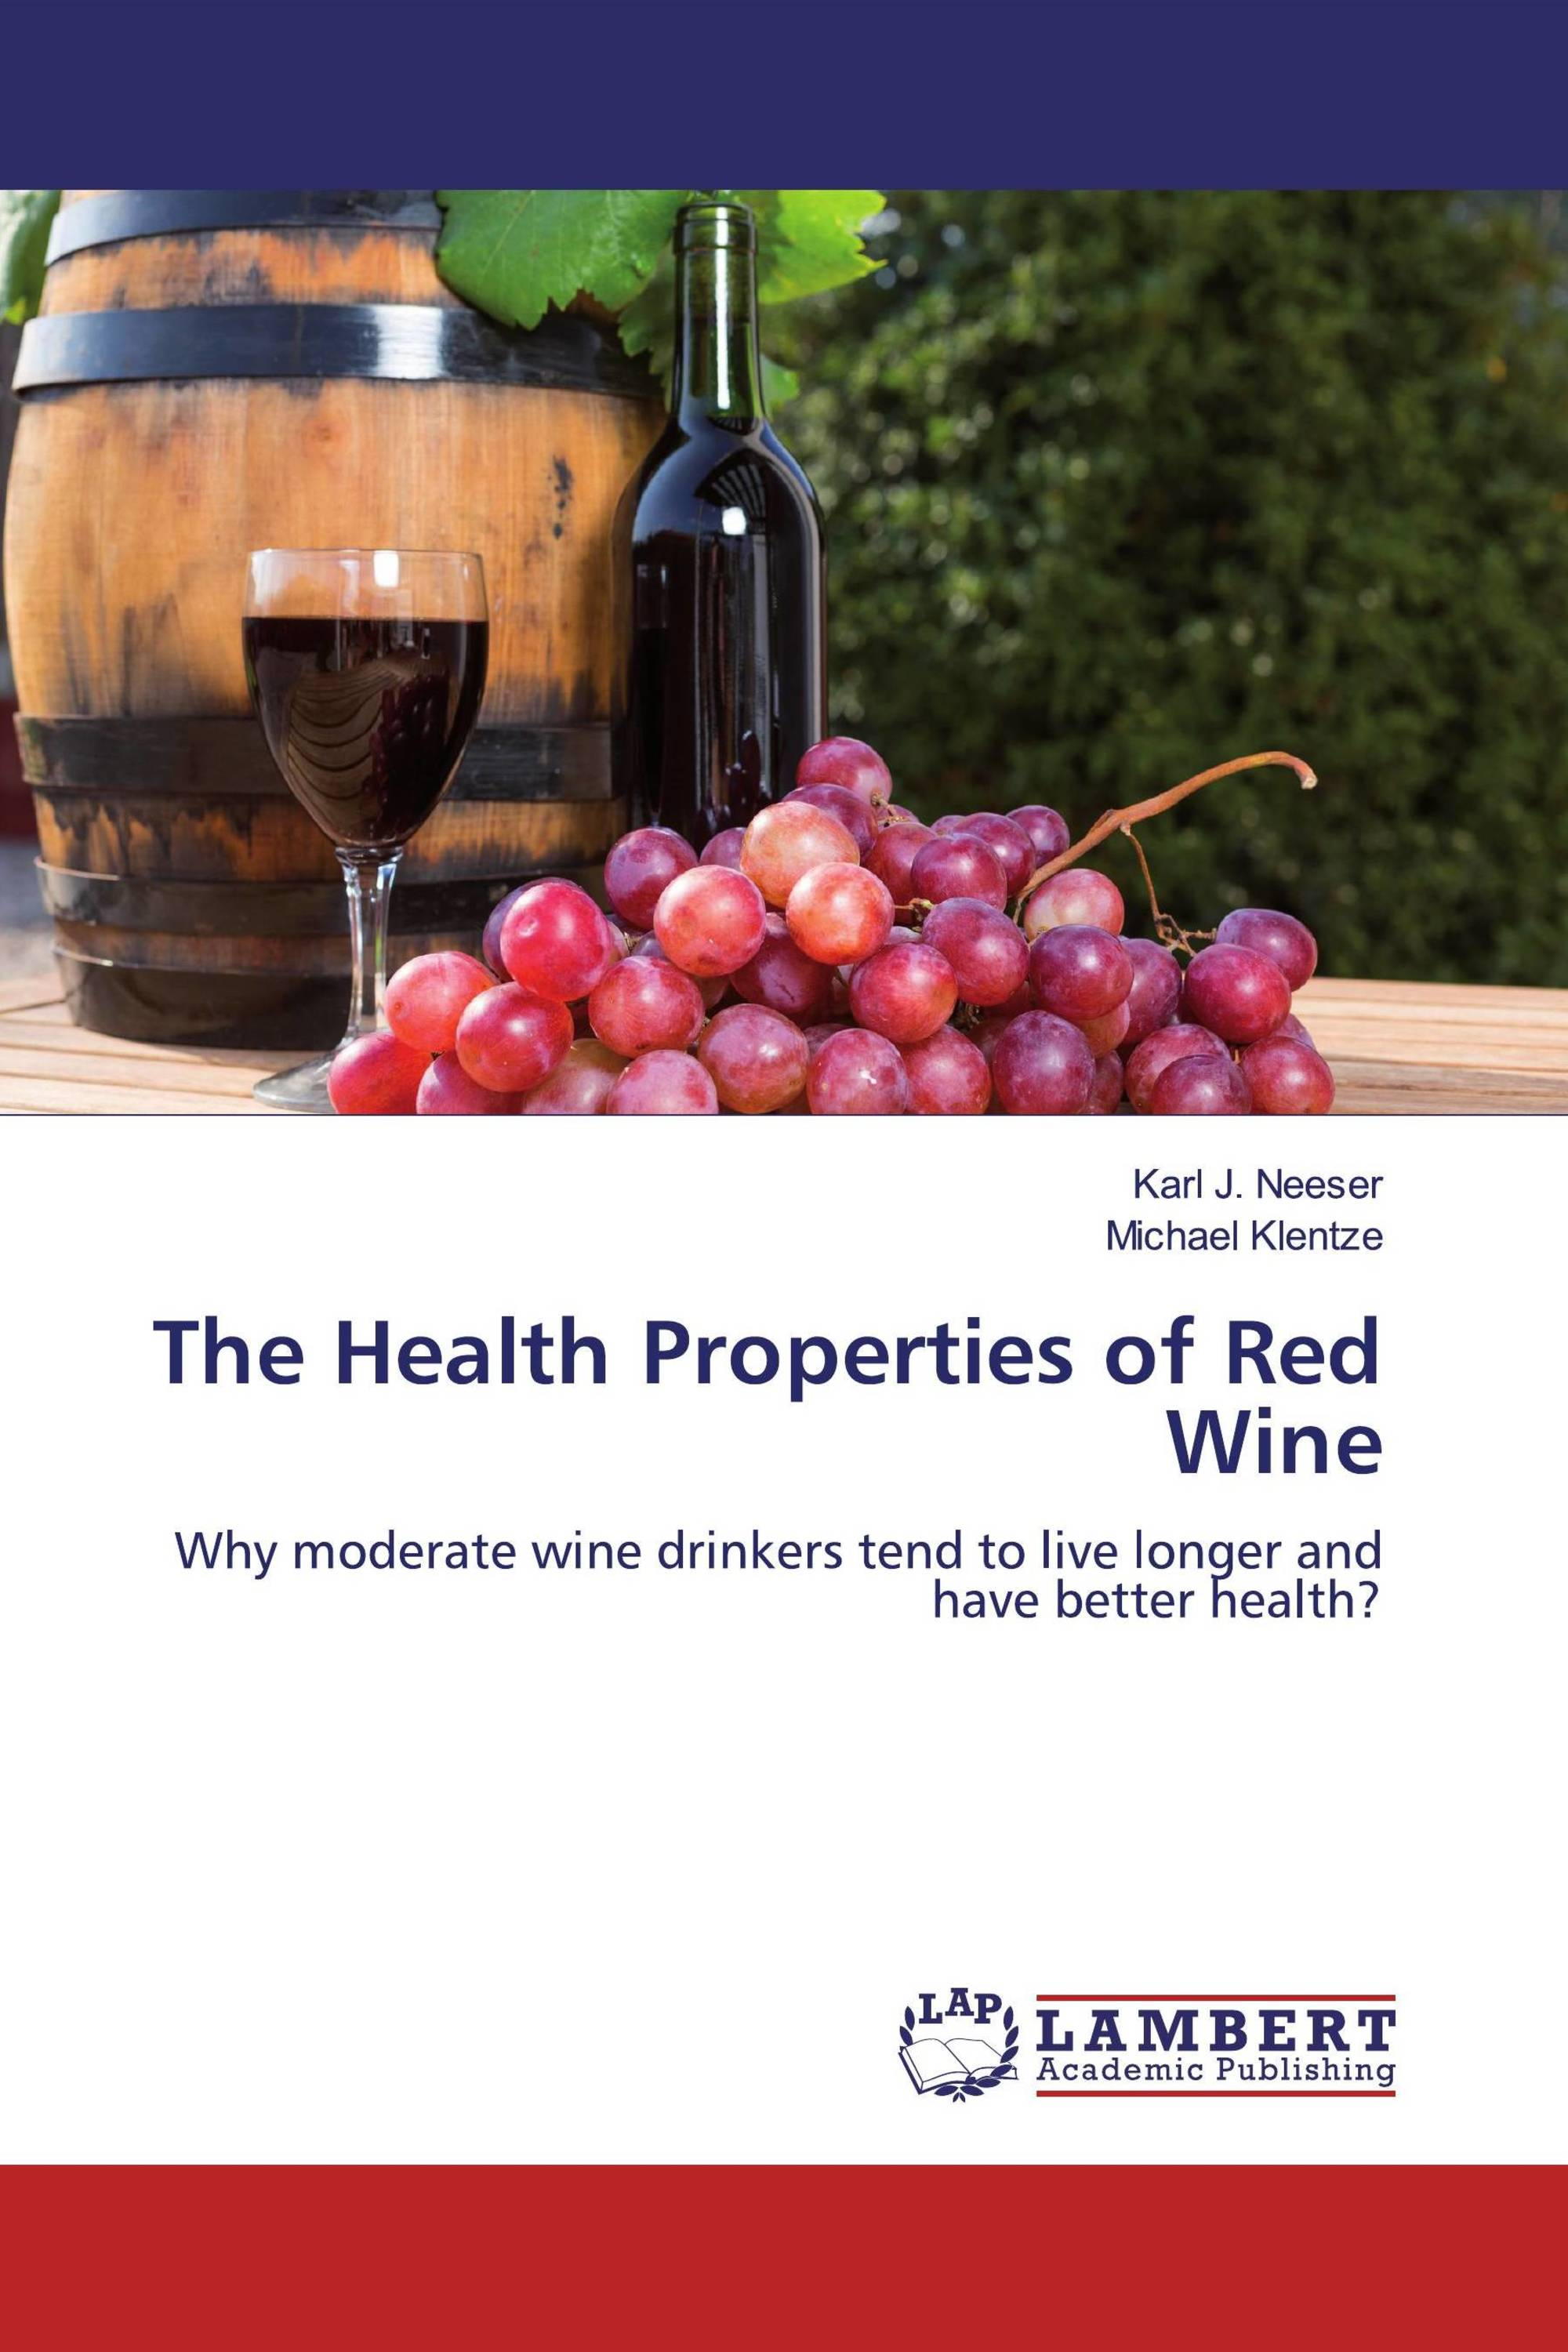 The Health Properties of Red Wine